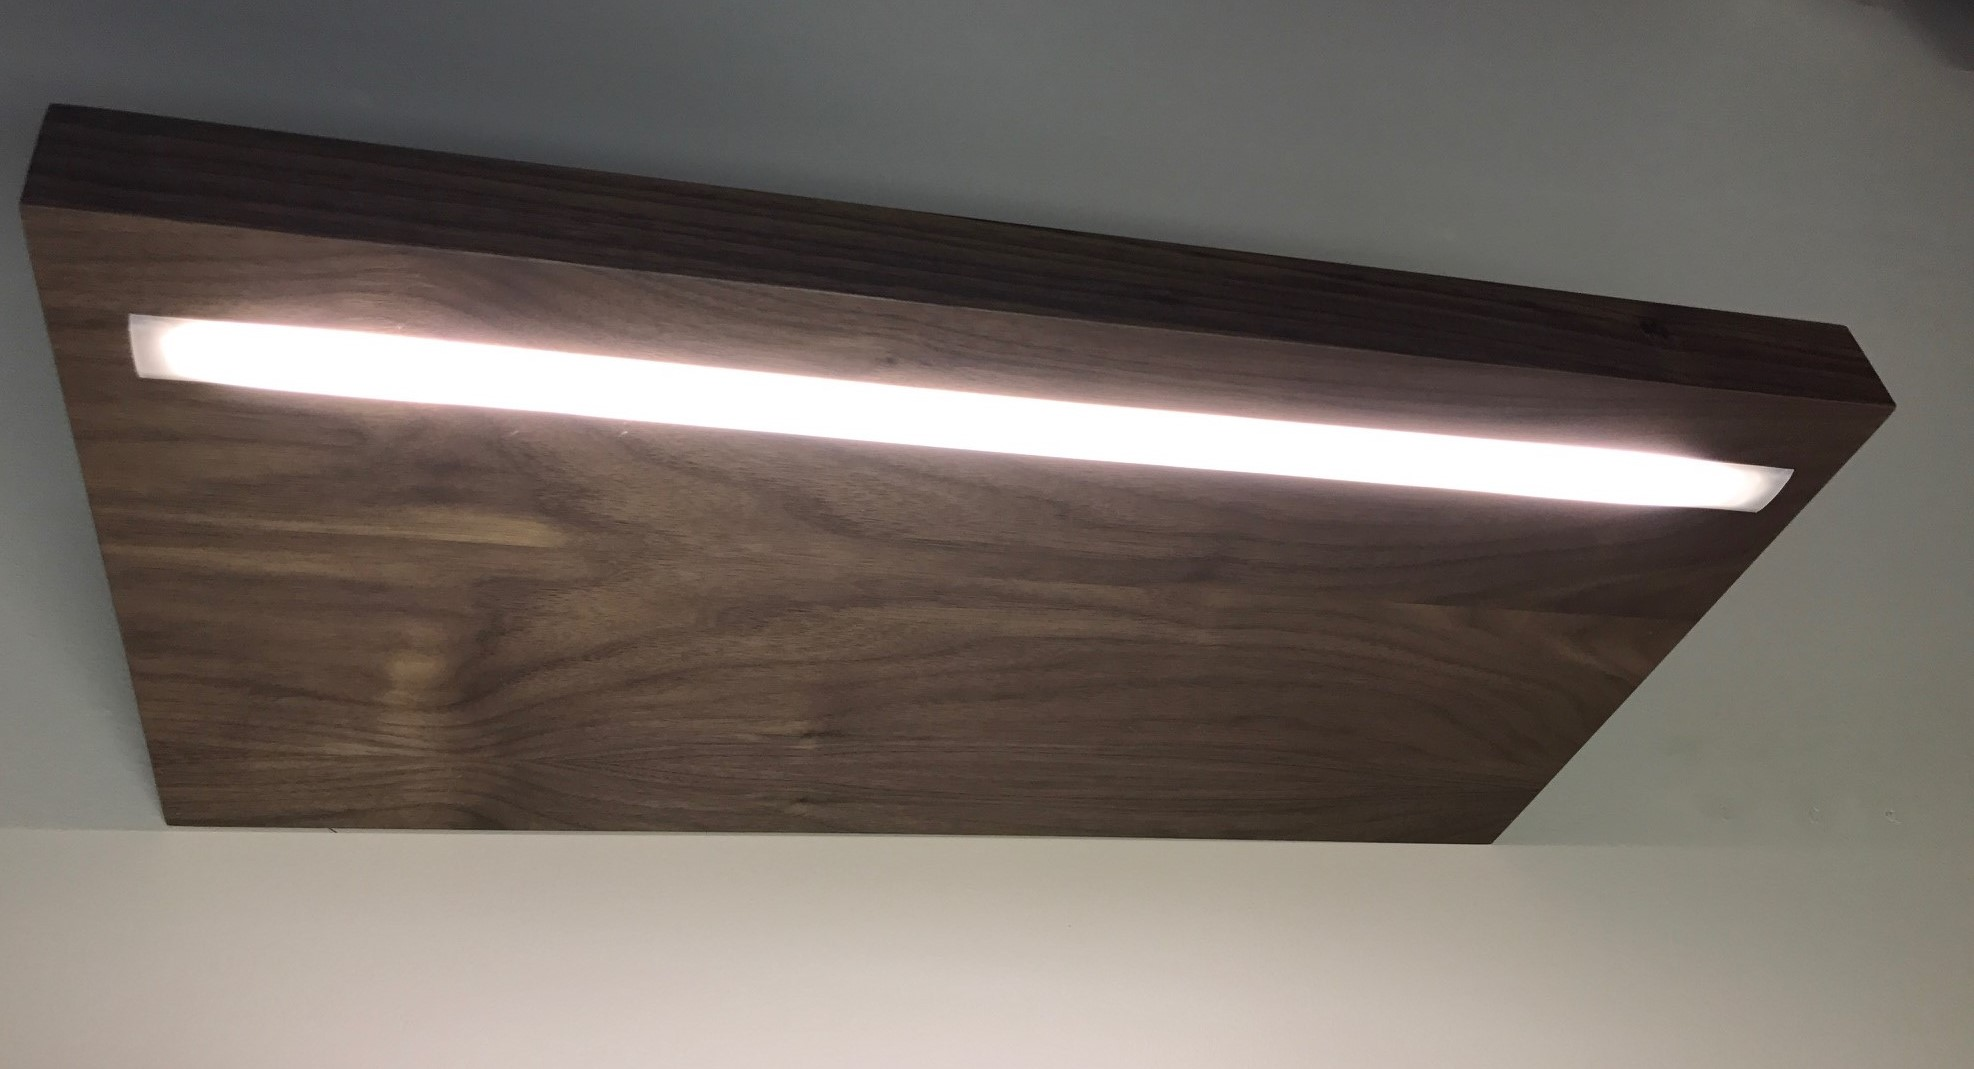 floating shelf with light encourage ikea lighting custom made home recessed shelves for corner led hickory front entrance installing stick vinyl flooring office cabinets best